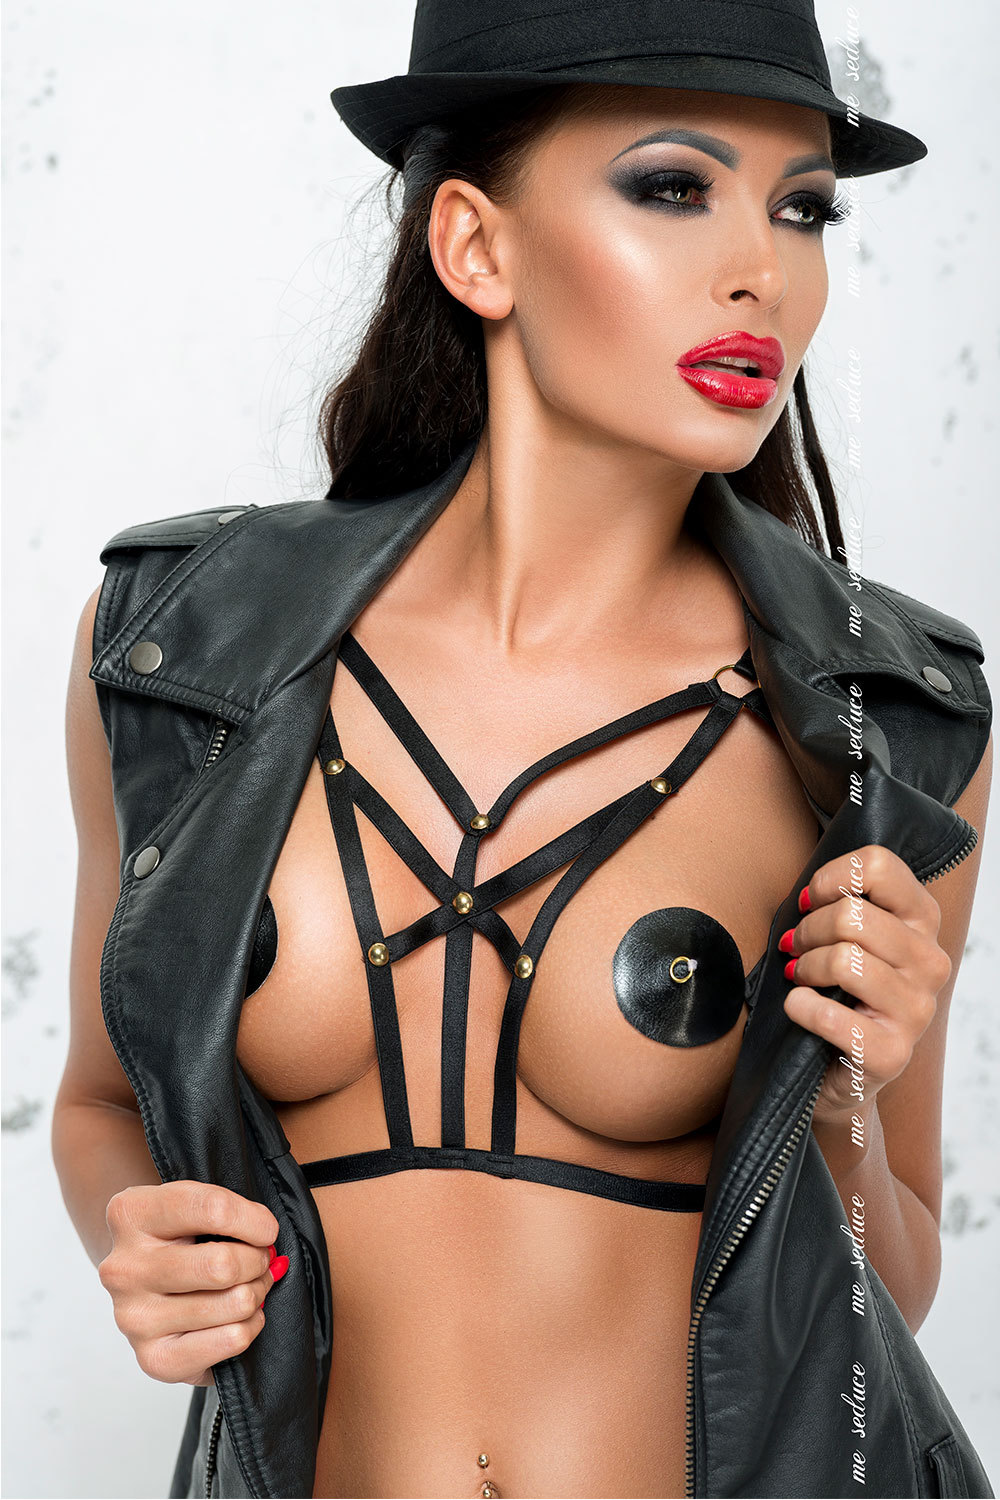 mes_harness_1_black_0